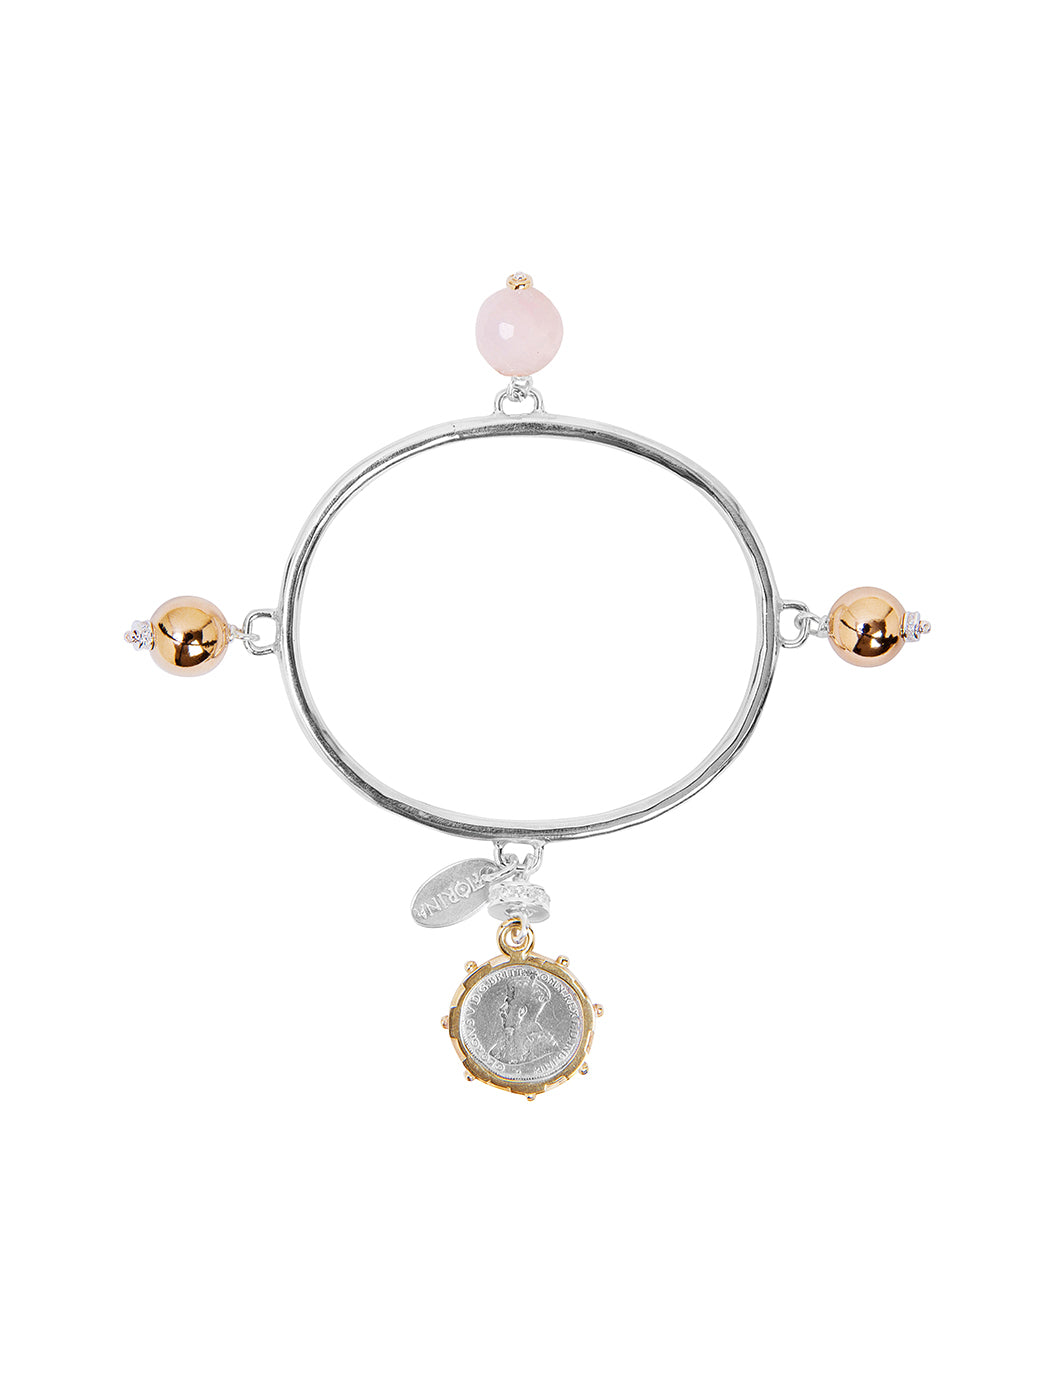 Fiorina Jewellery Vivaldi Bangle Pink Opal